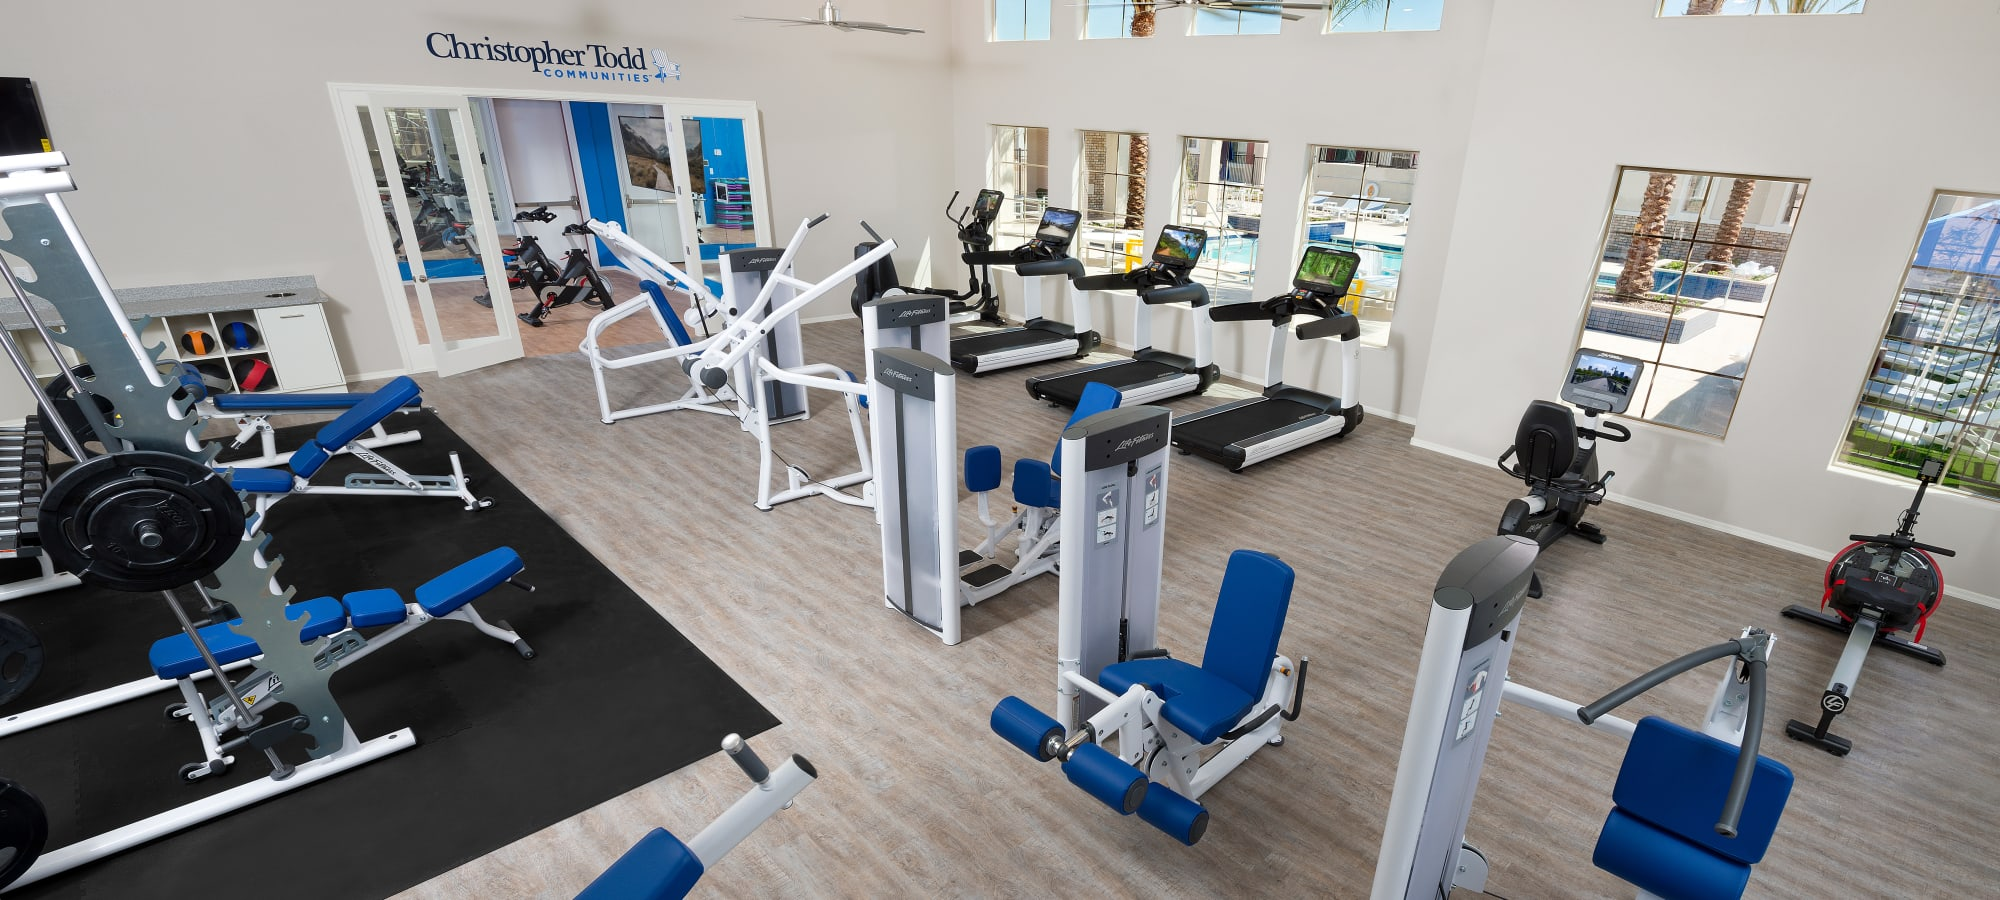 Fitness center and yoga studio at Christopher Todd Communities On Happy Valley in Peoria, Arizona